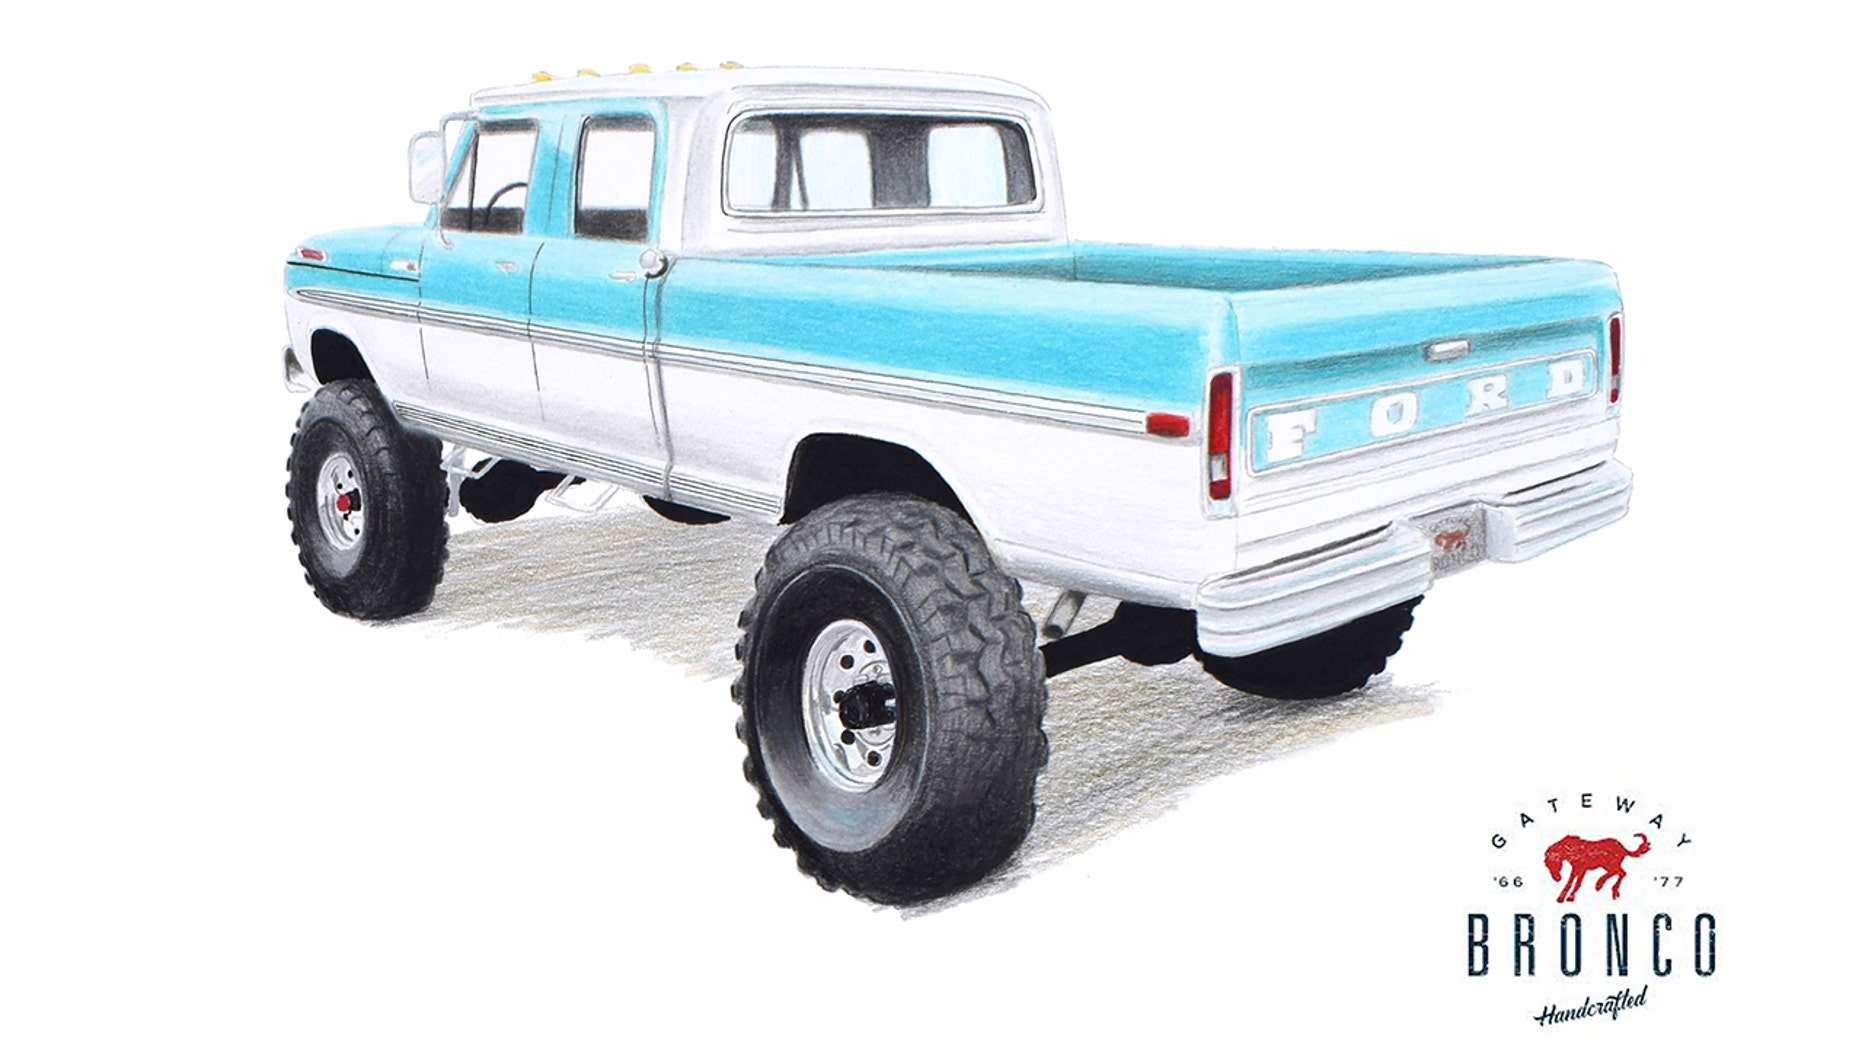 1969 Ford F-250 monster truck